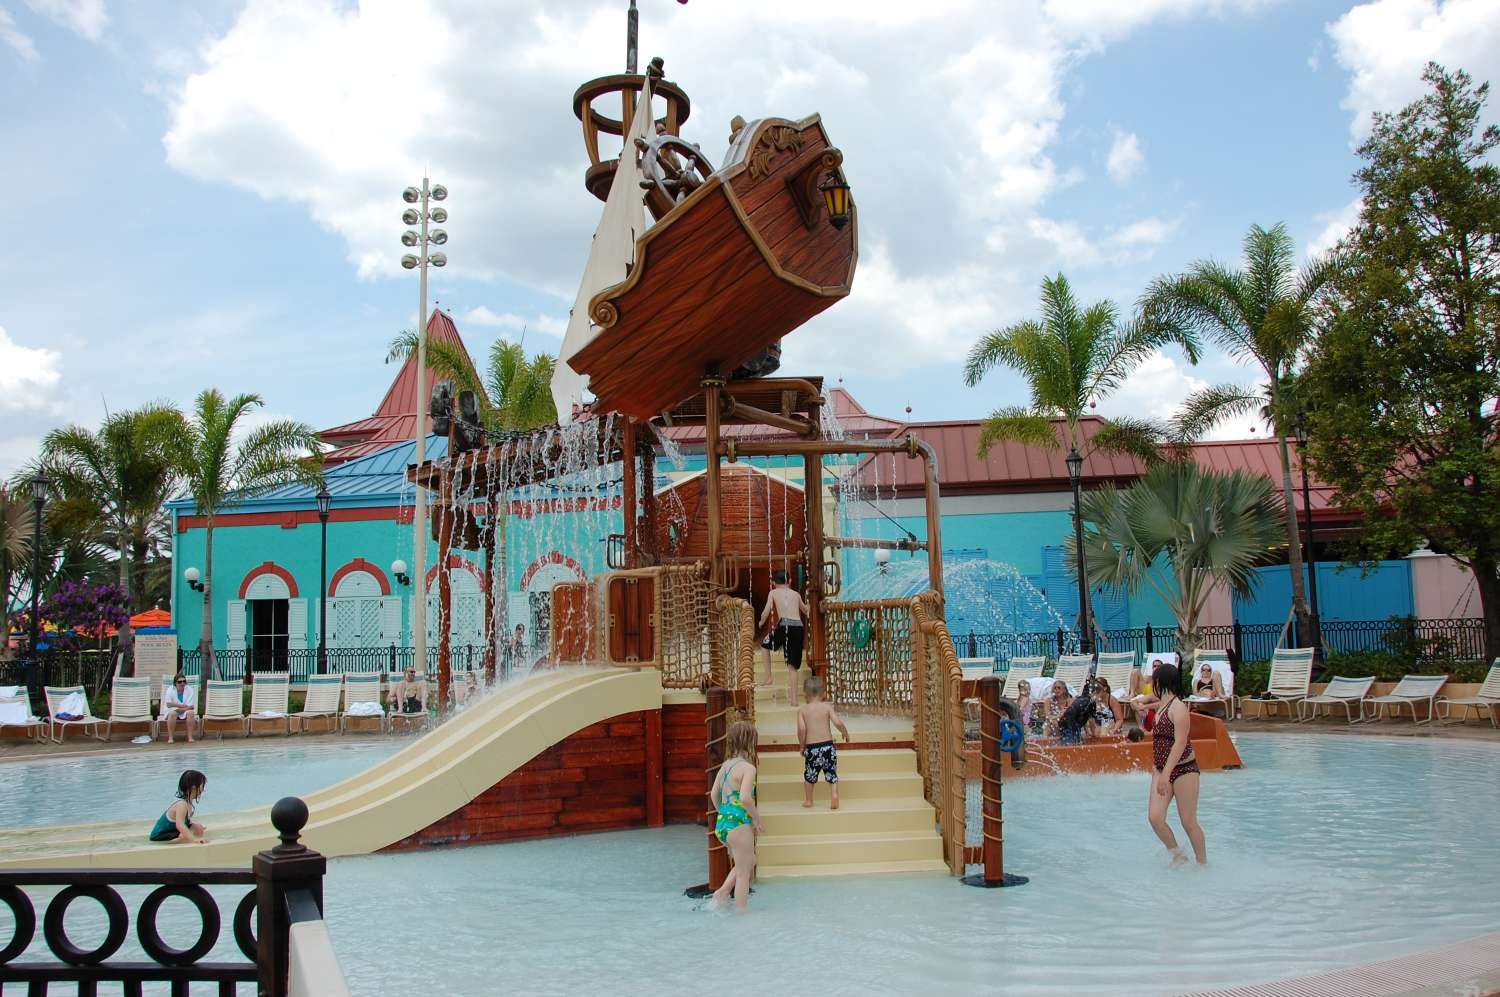 Disney's-Caribbean-Beach-Resort-Pirate-Ship-Splash-Zone (2).jpg